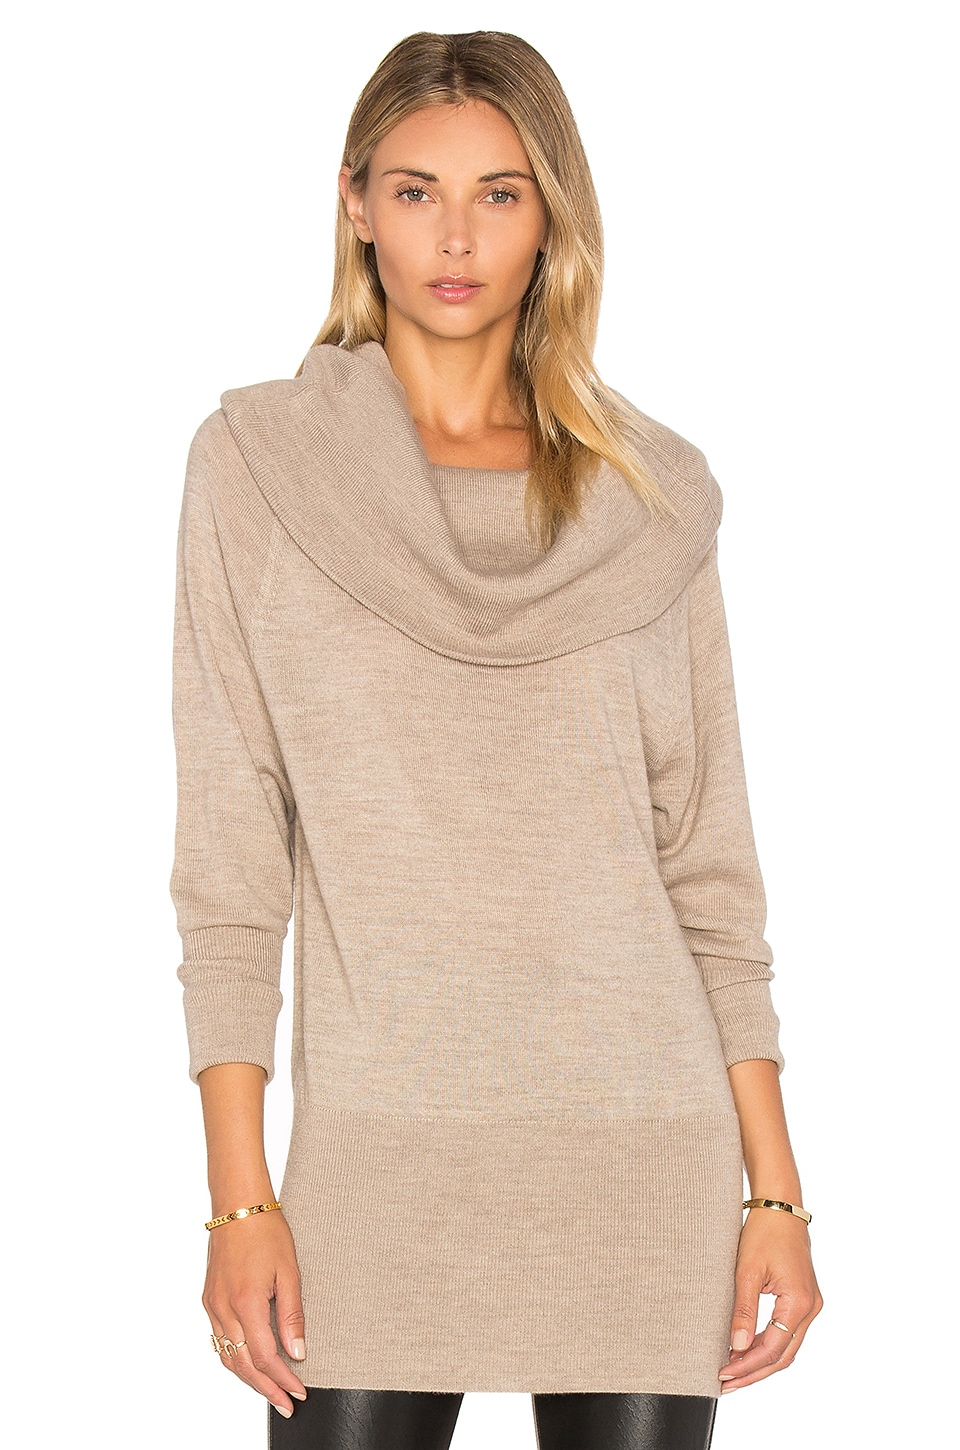 Ella Moss Jodi Sweater in Heather Wheat